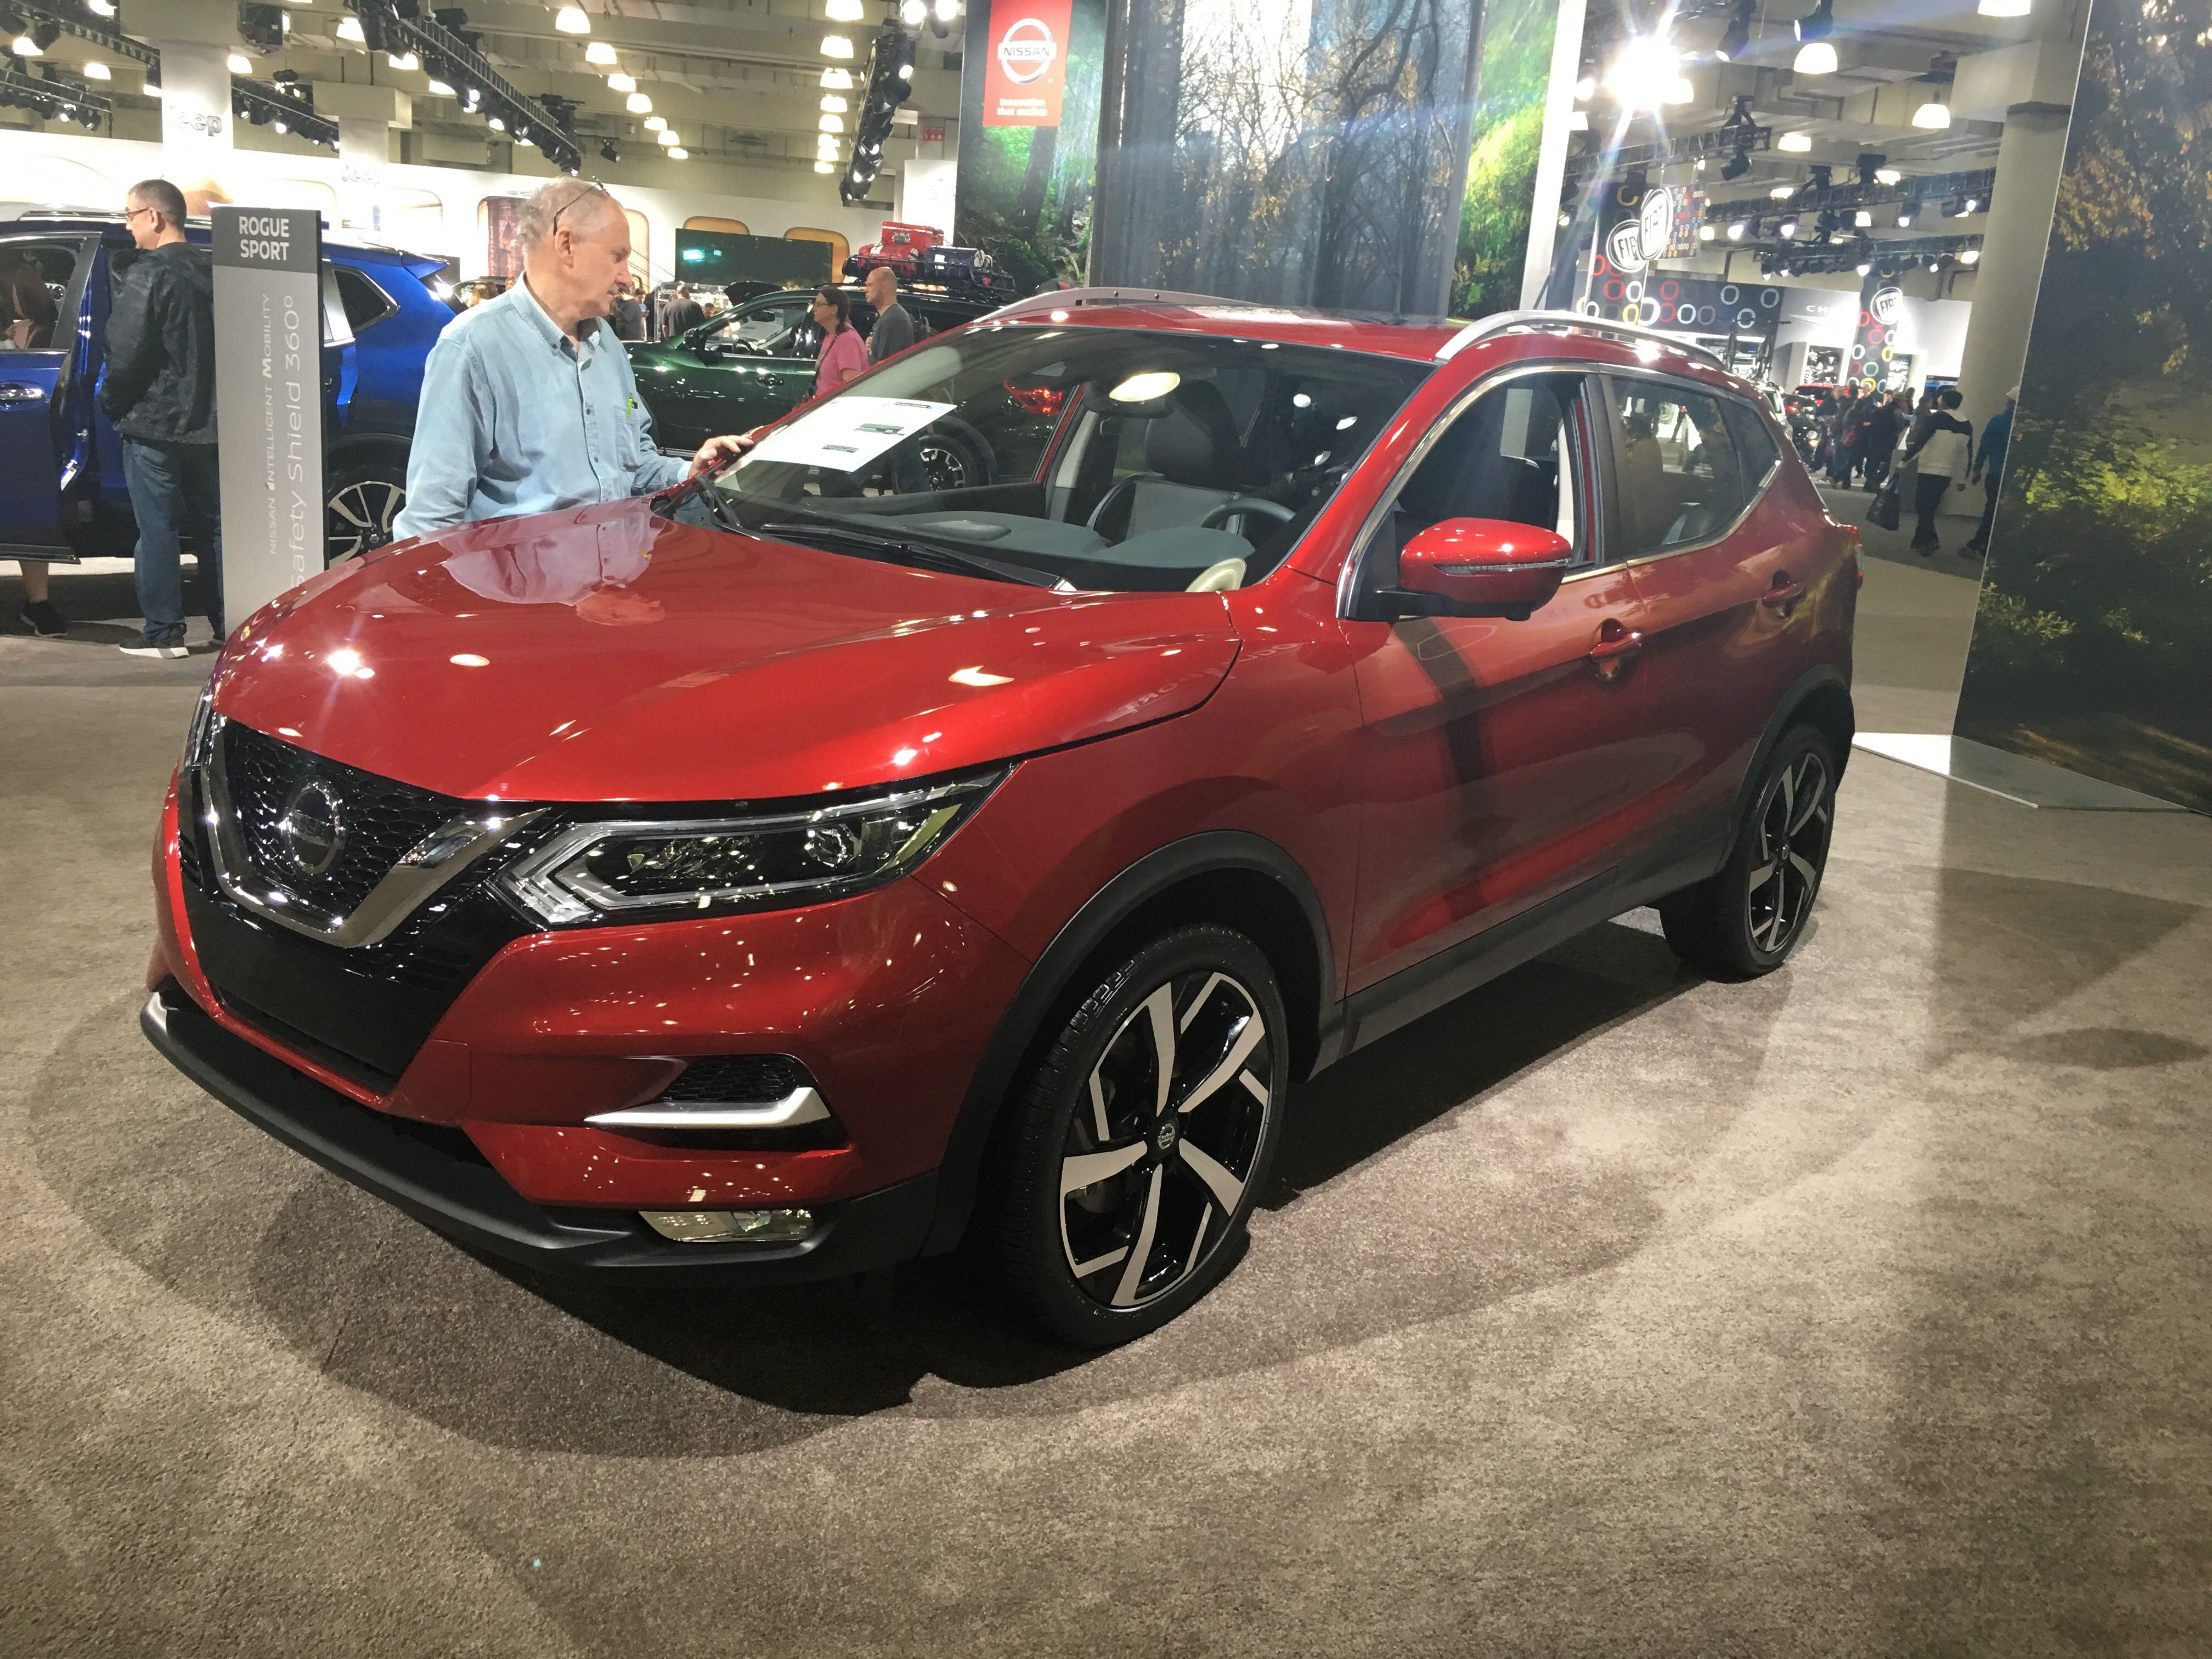 2019 Nissan Rogue Sport Nissan, Reliable cars, Nissan rogue